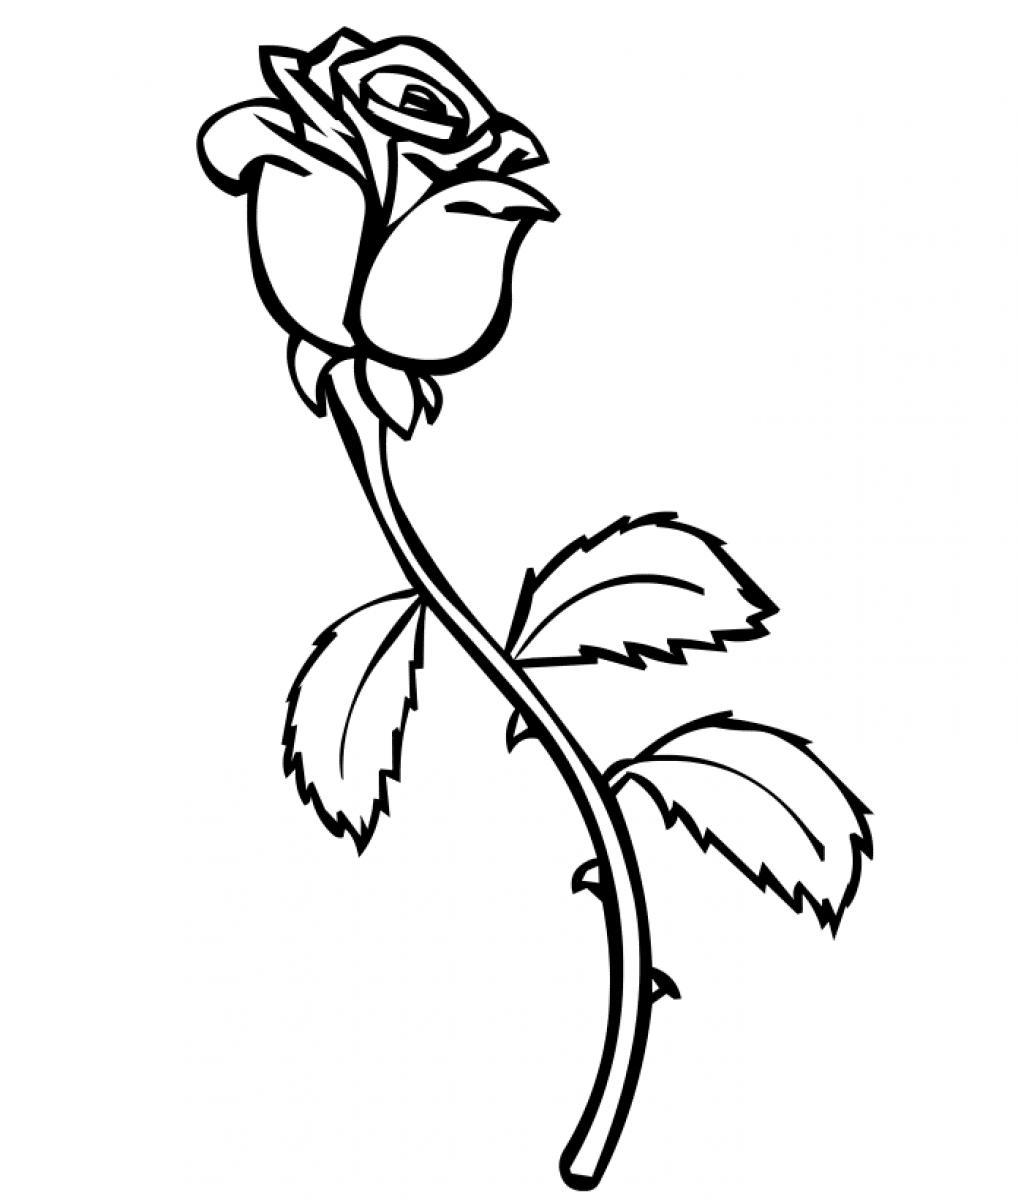 coloring book rose free printable roses coloring pages for kids book rose coloring